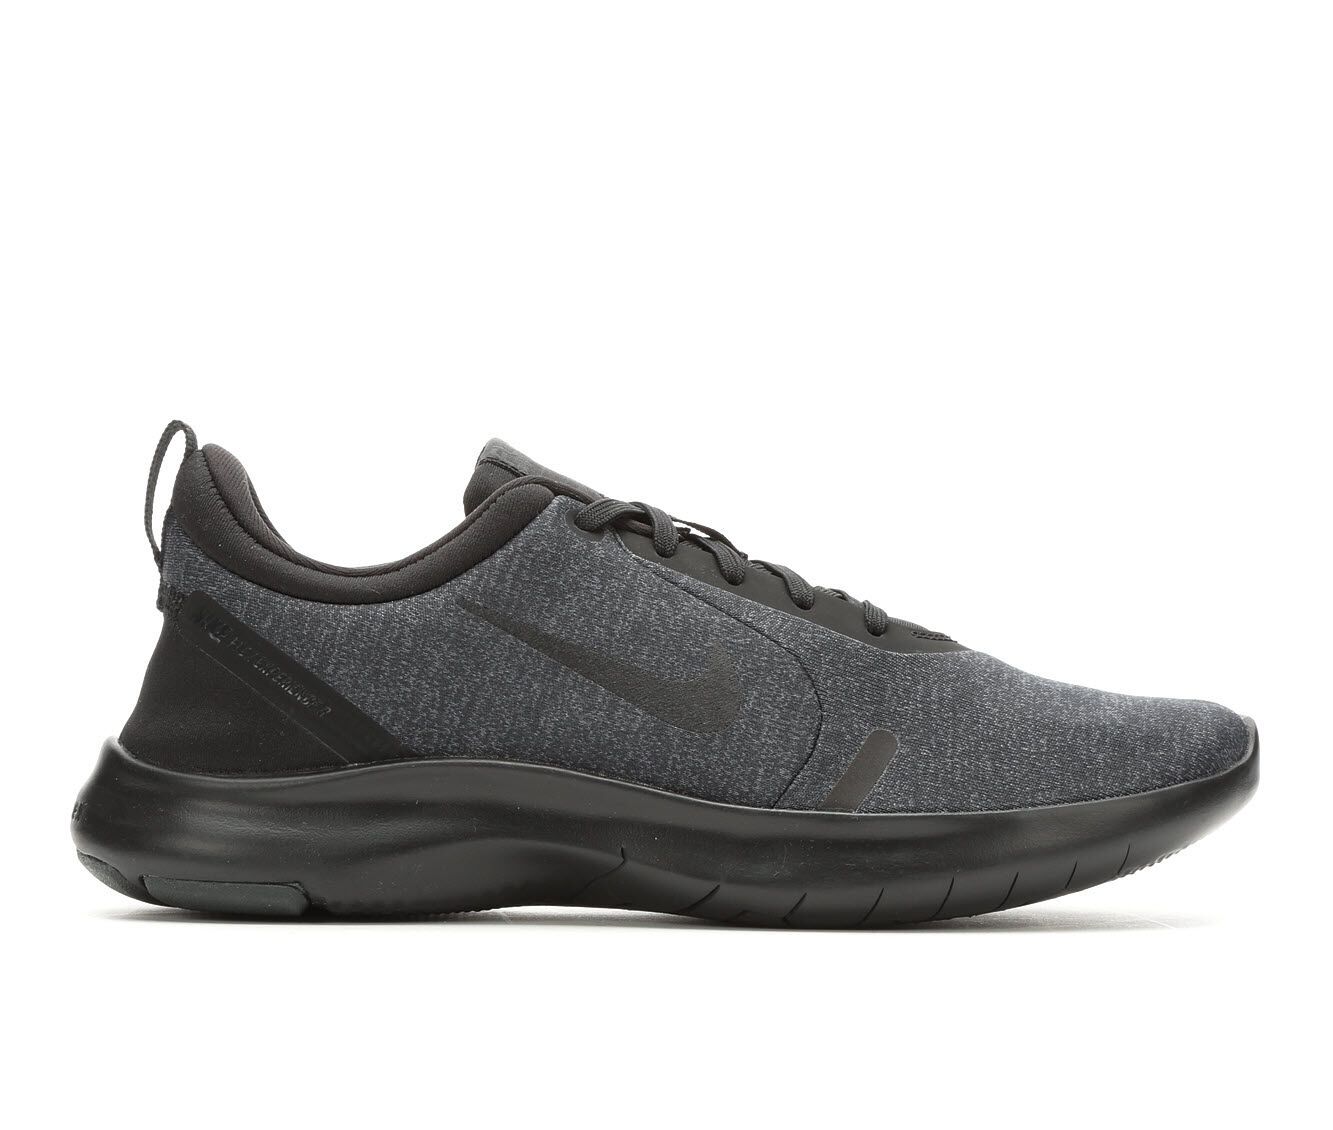 Women's Nike Flex Experience Run 8 Running Shoes Black/Anth/Grey